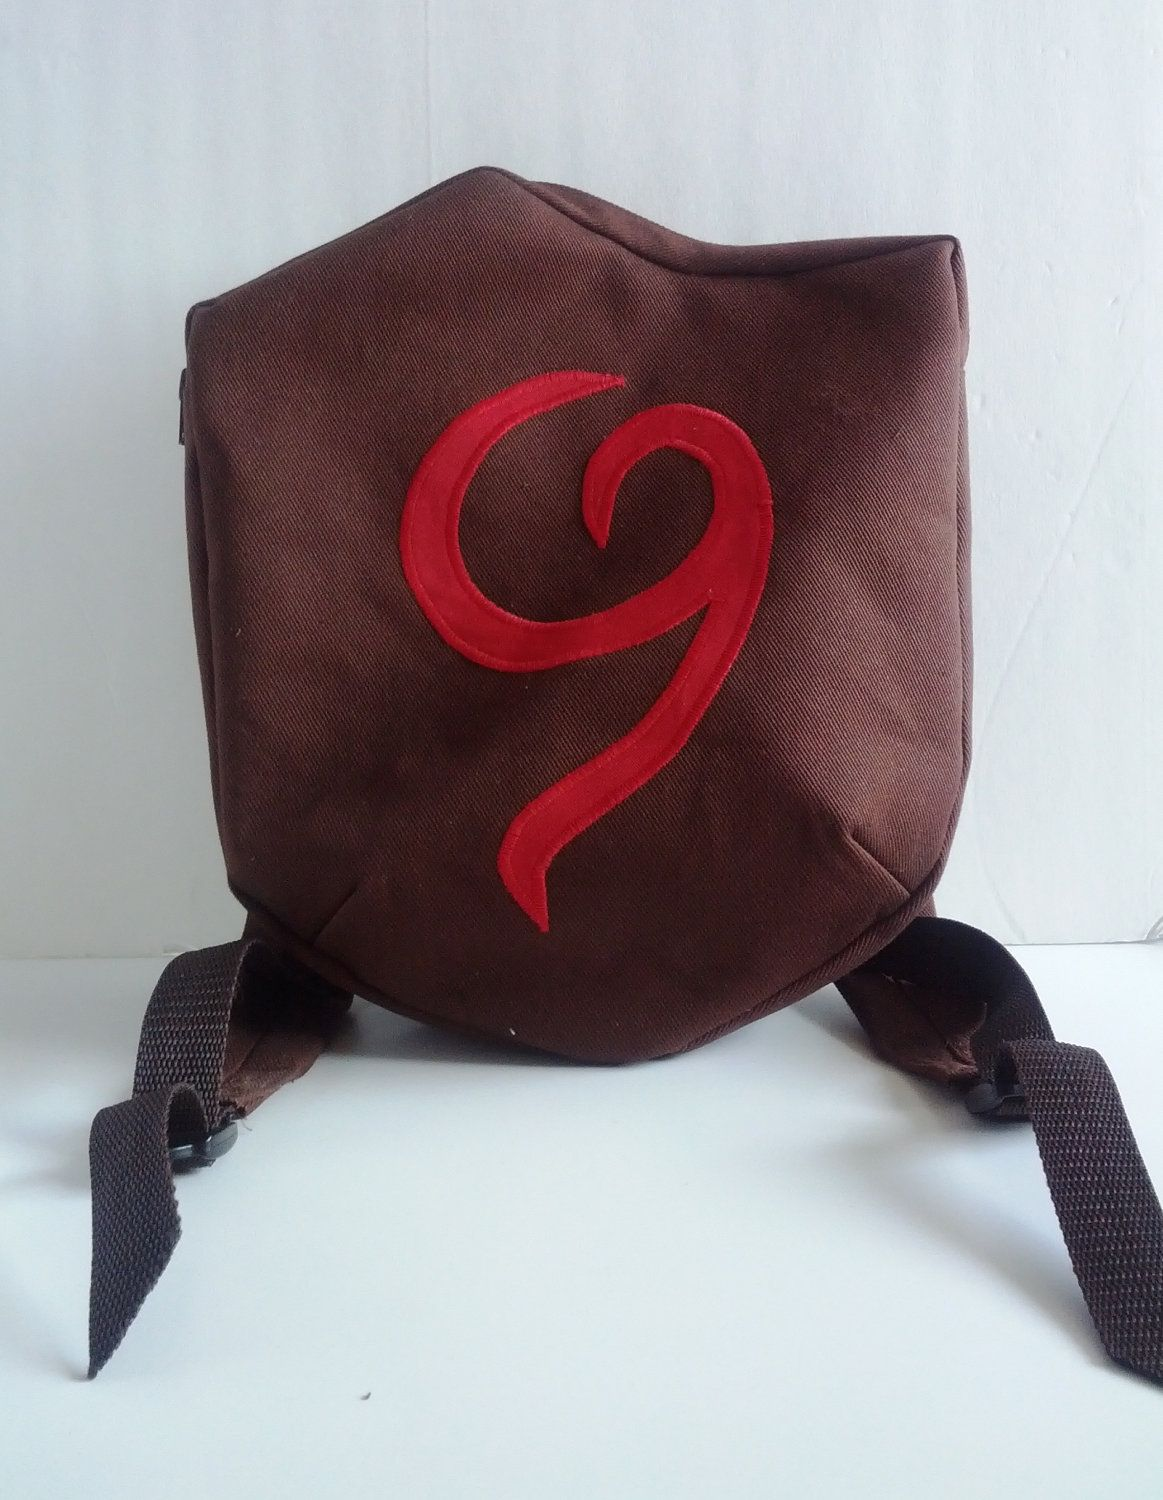 Legend of zelda ocarina of time kokiri deku shield backpack madeto